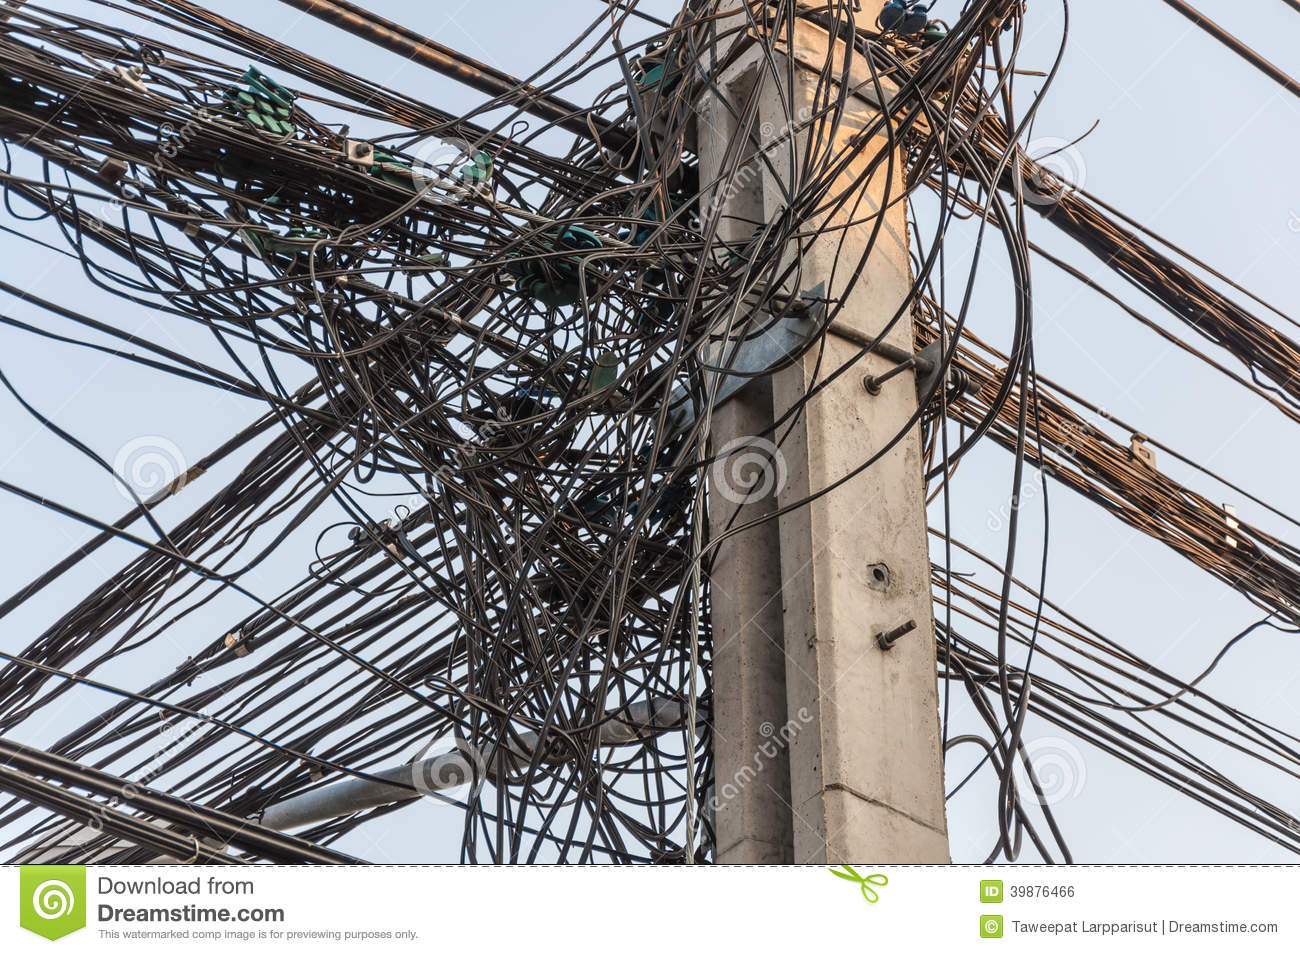 Tangle cable on pole stock photo. Image of electric, white - 39876466